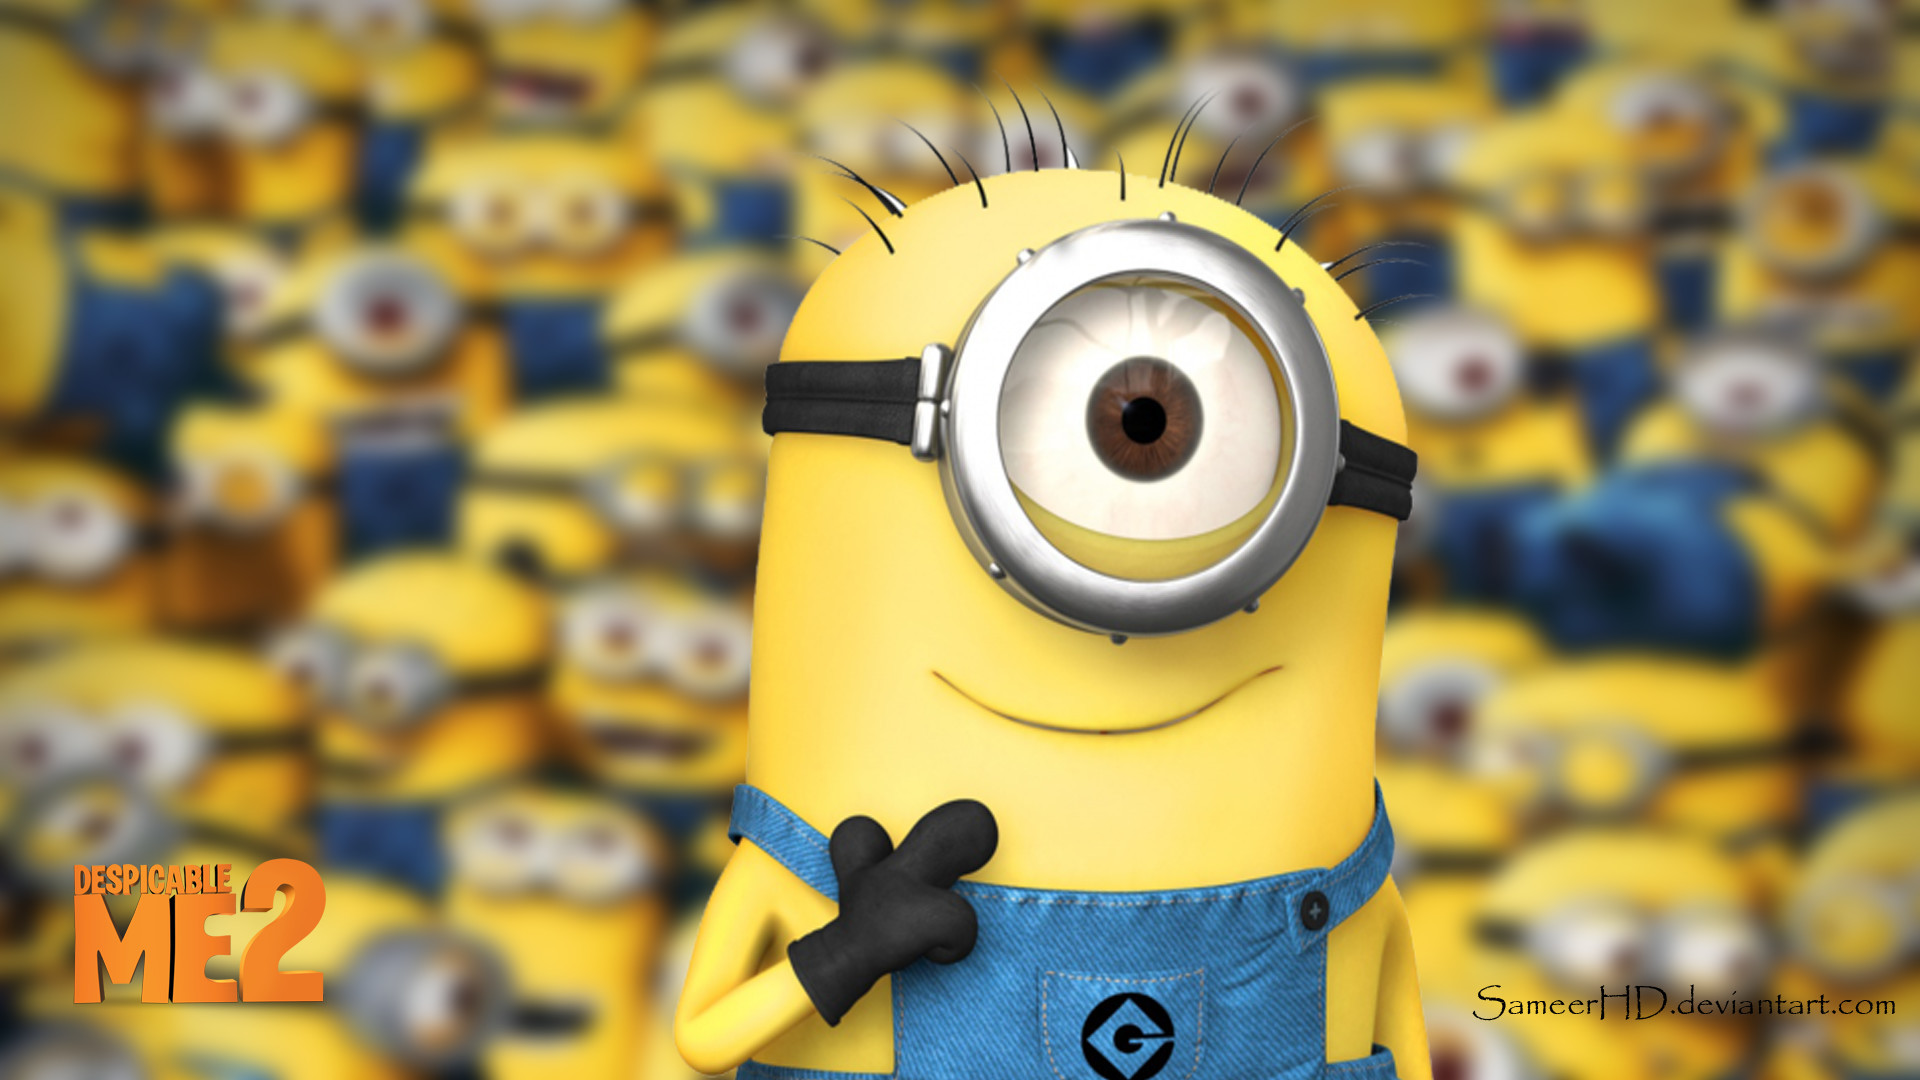 Res: 1920x1080, Despicable Me 2 Minion Wallpaper by SameerHD on DeviantArt